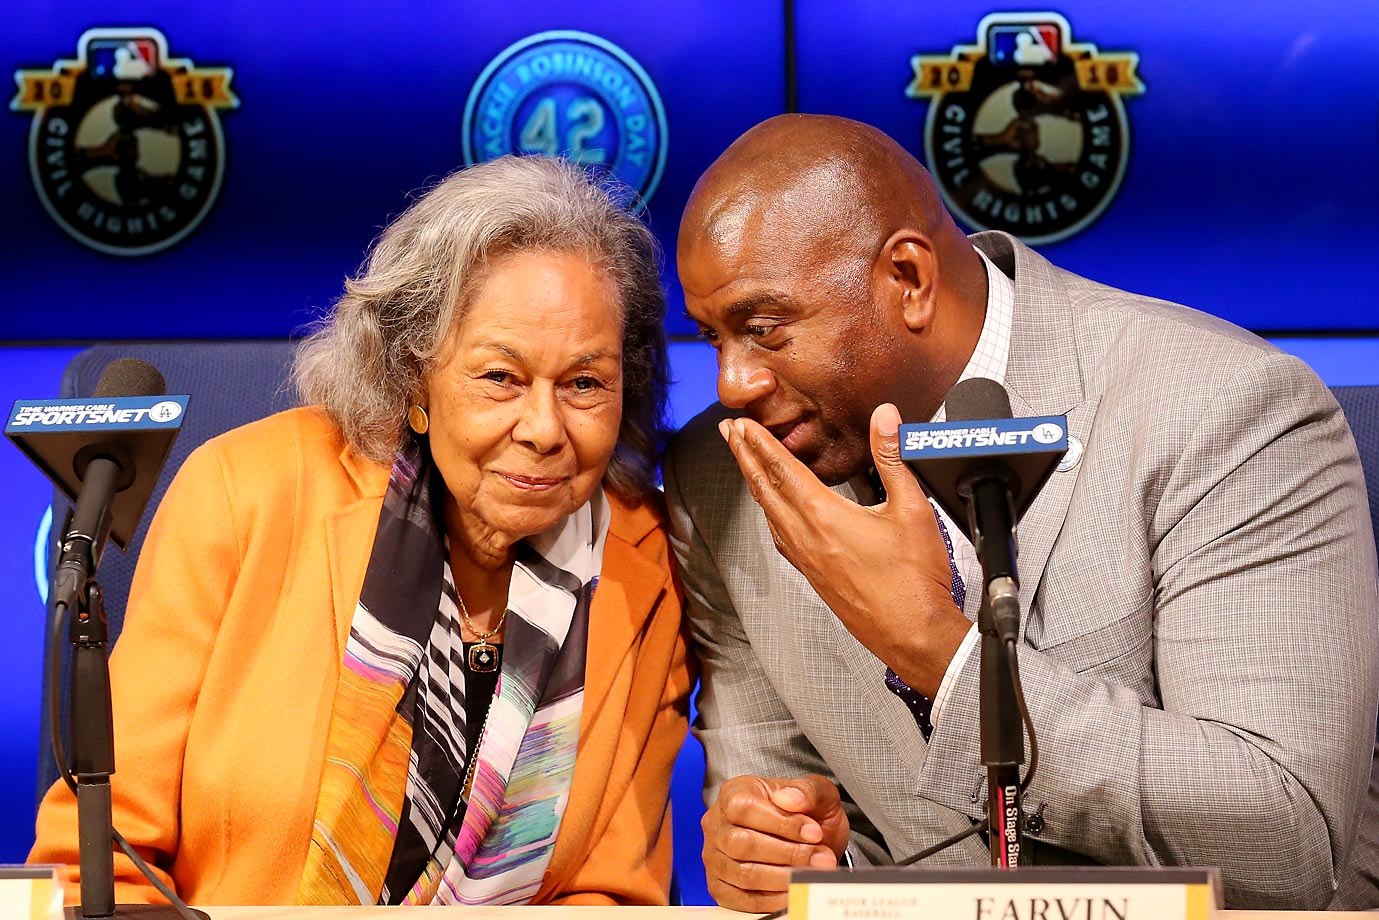 Rachel Robinson, the widow of Jackie Robinson, and Magic Johnson share a little chuckle at a press conference before the Jackie Robinson Day festivities in Los Angeles.